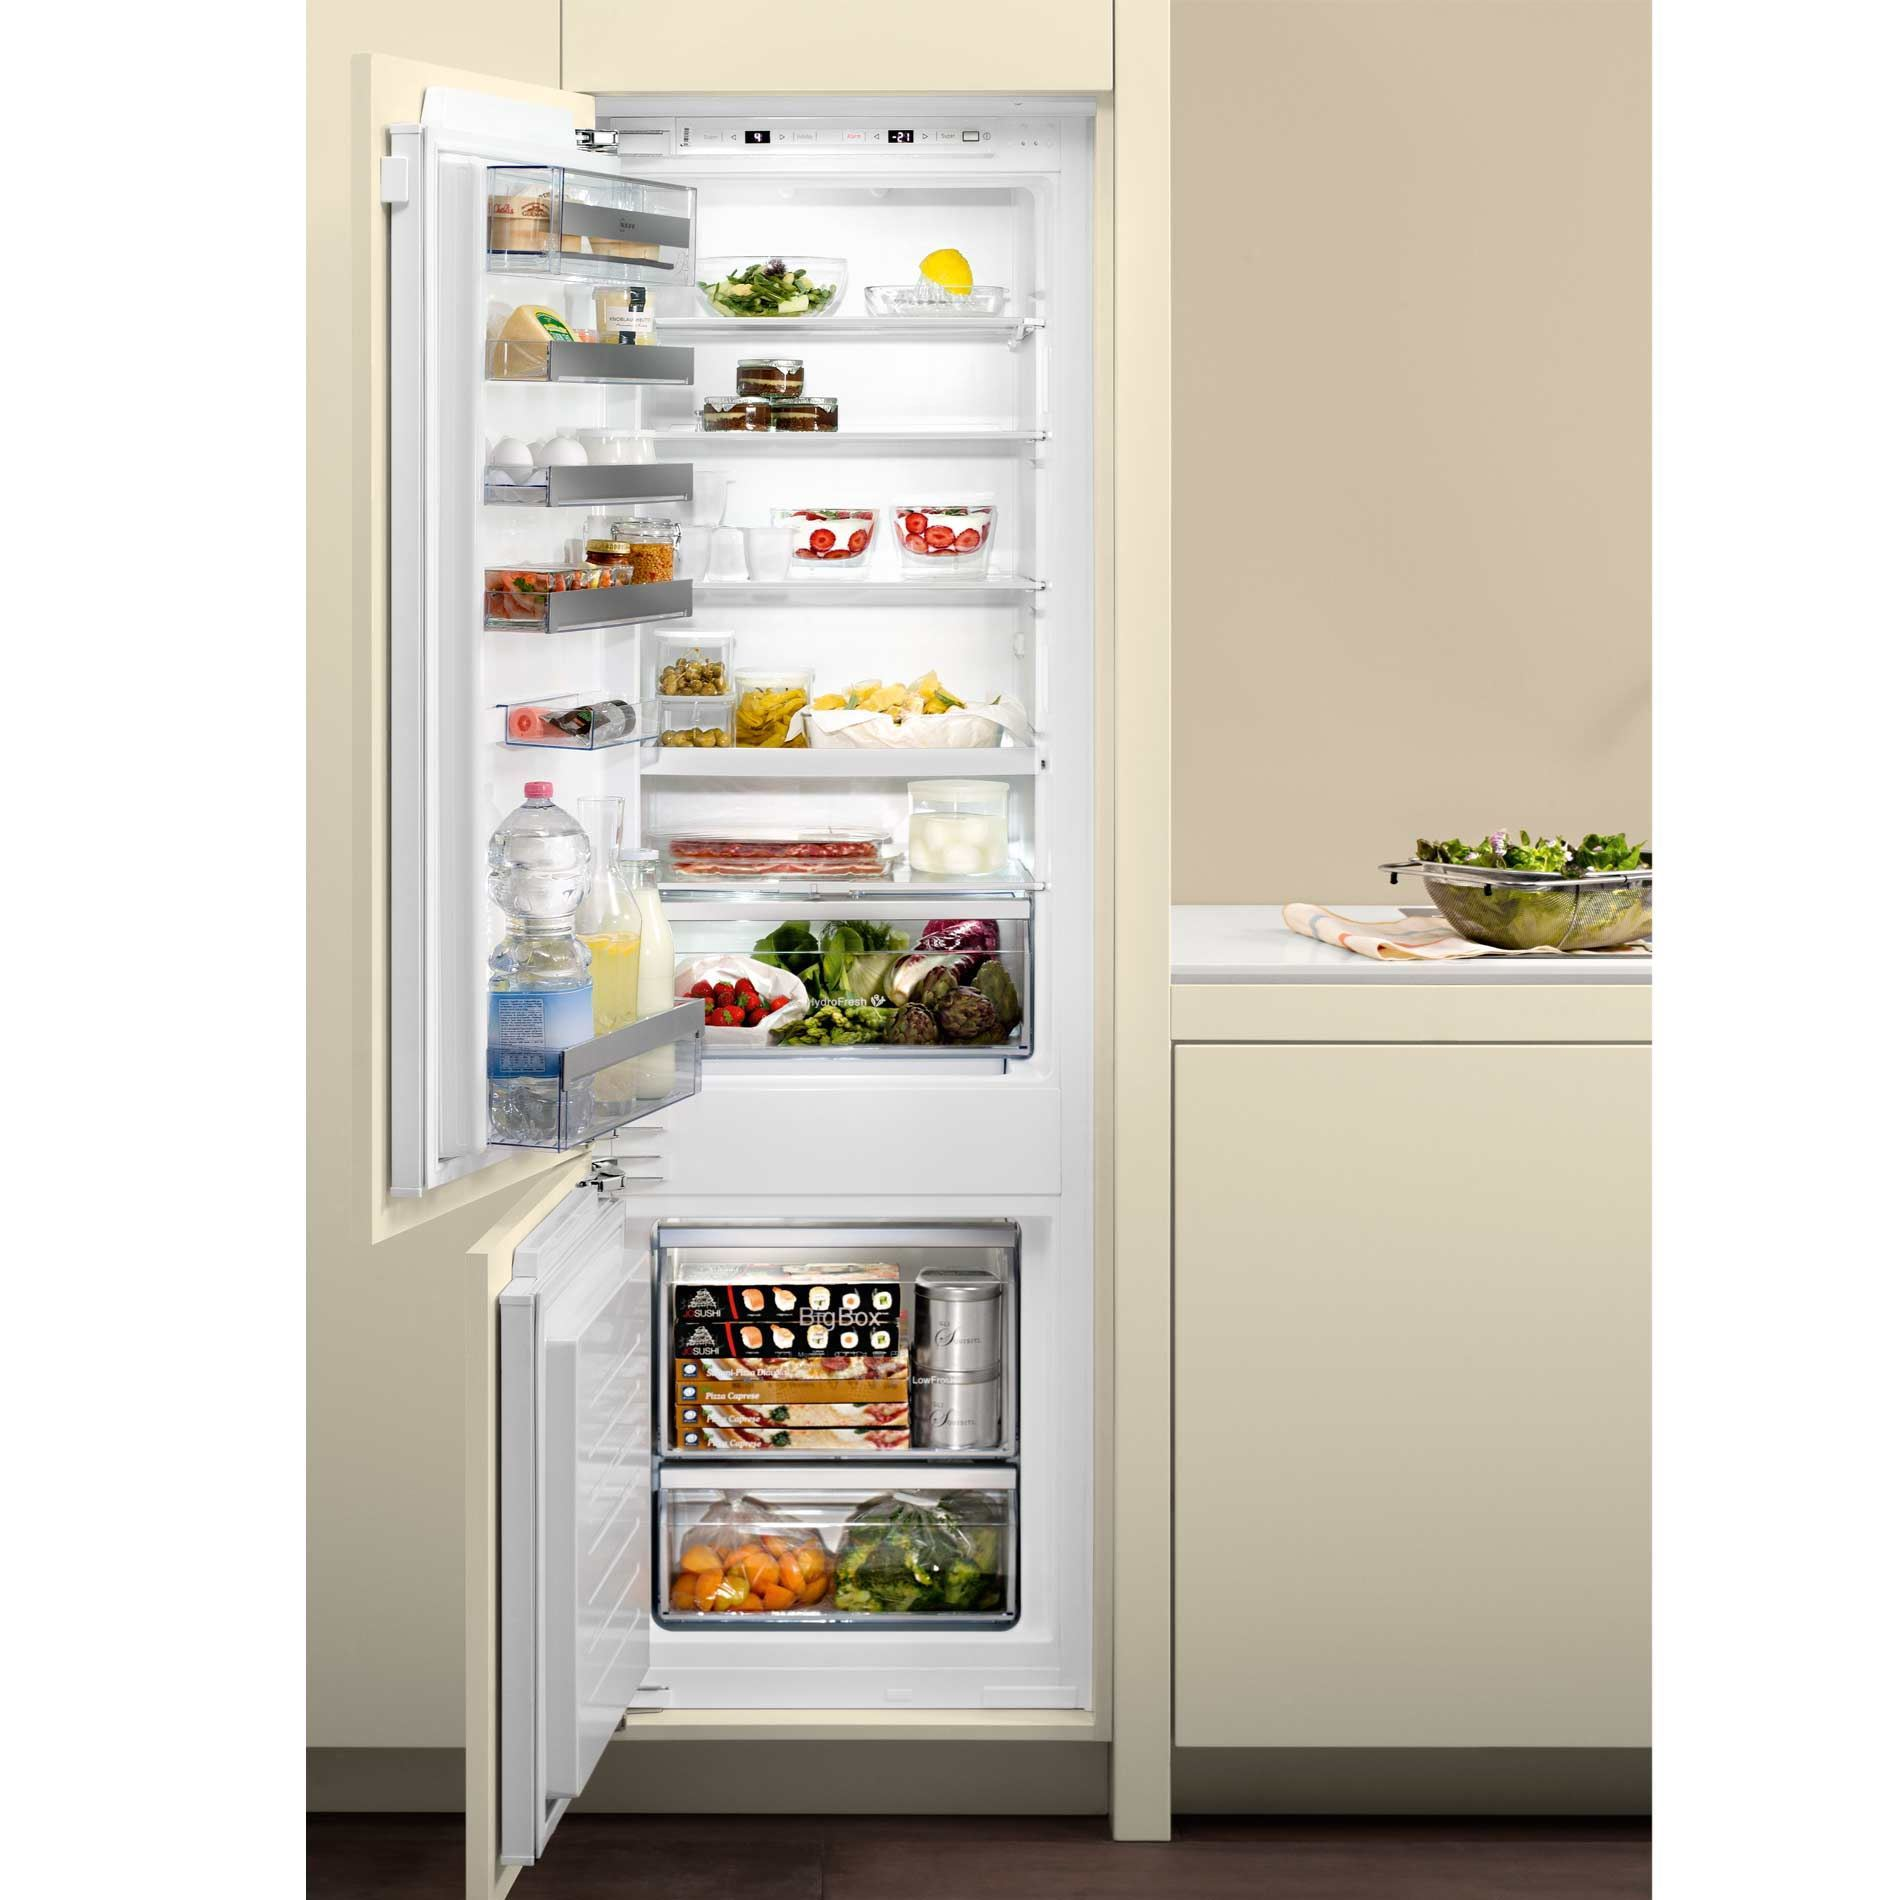 Neff Ki6873f30g 70 30 Built In Fridge Freezer Appliance